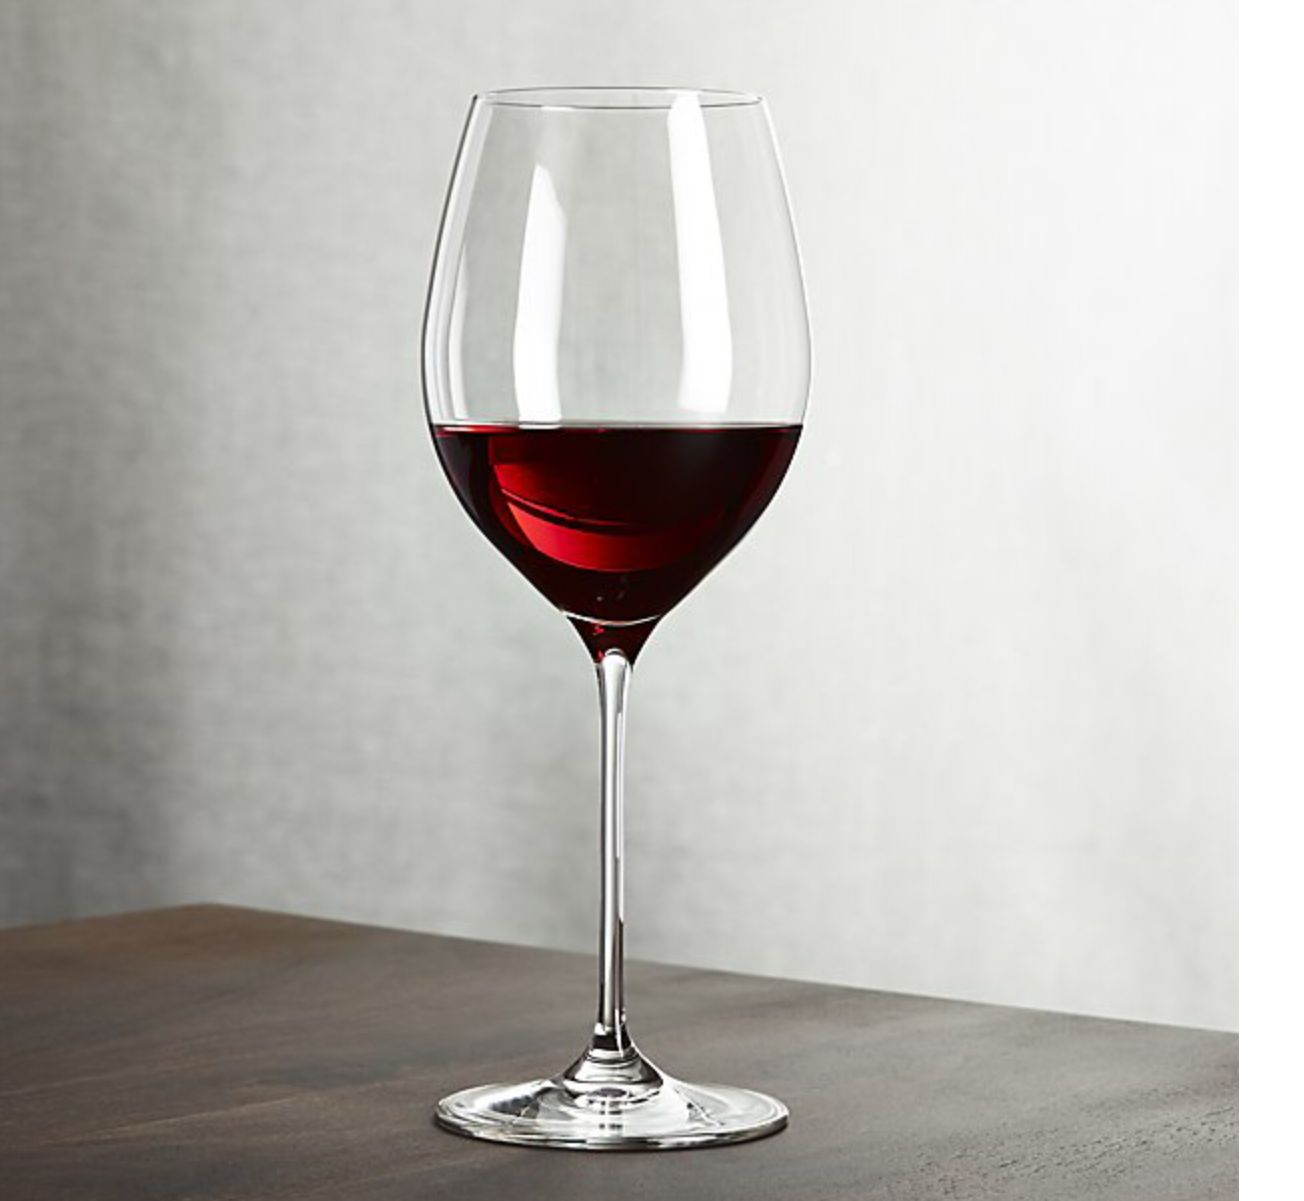 High Quality Wine Glasses Wine Glass Half Full Blank Template Imgflip